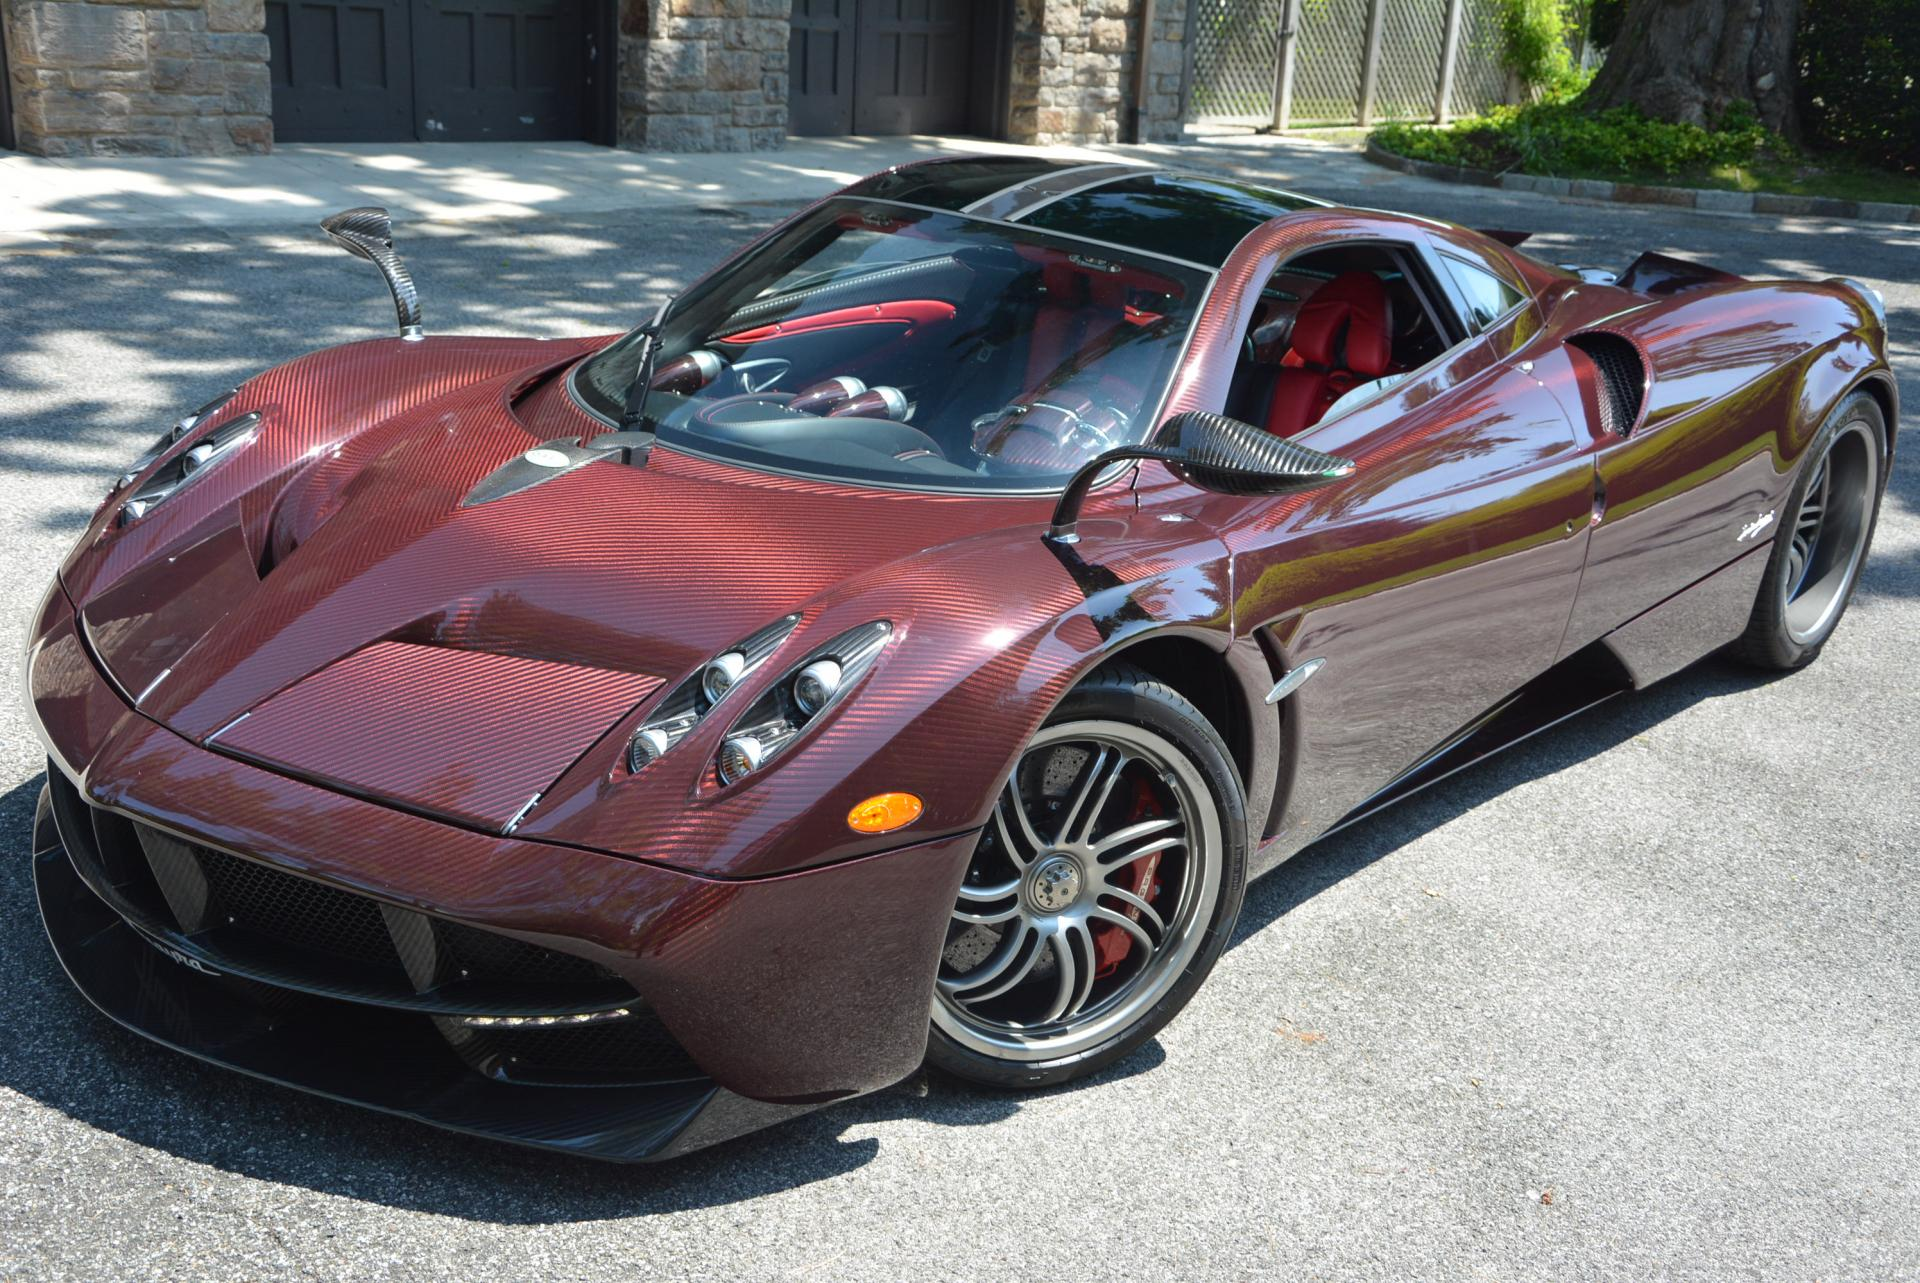 Check out the Pagani Huayra review at CARandDRIVERcom Use our Car Buying Guide to research Pagani Huayra prices specs photos videos and more